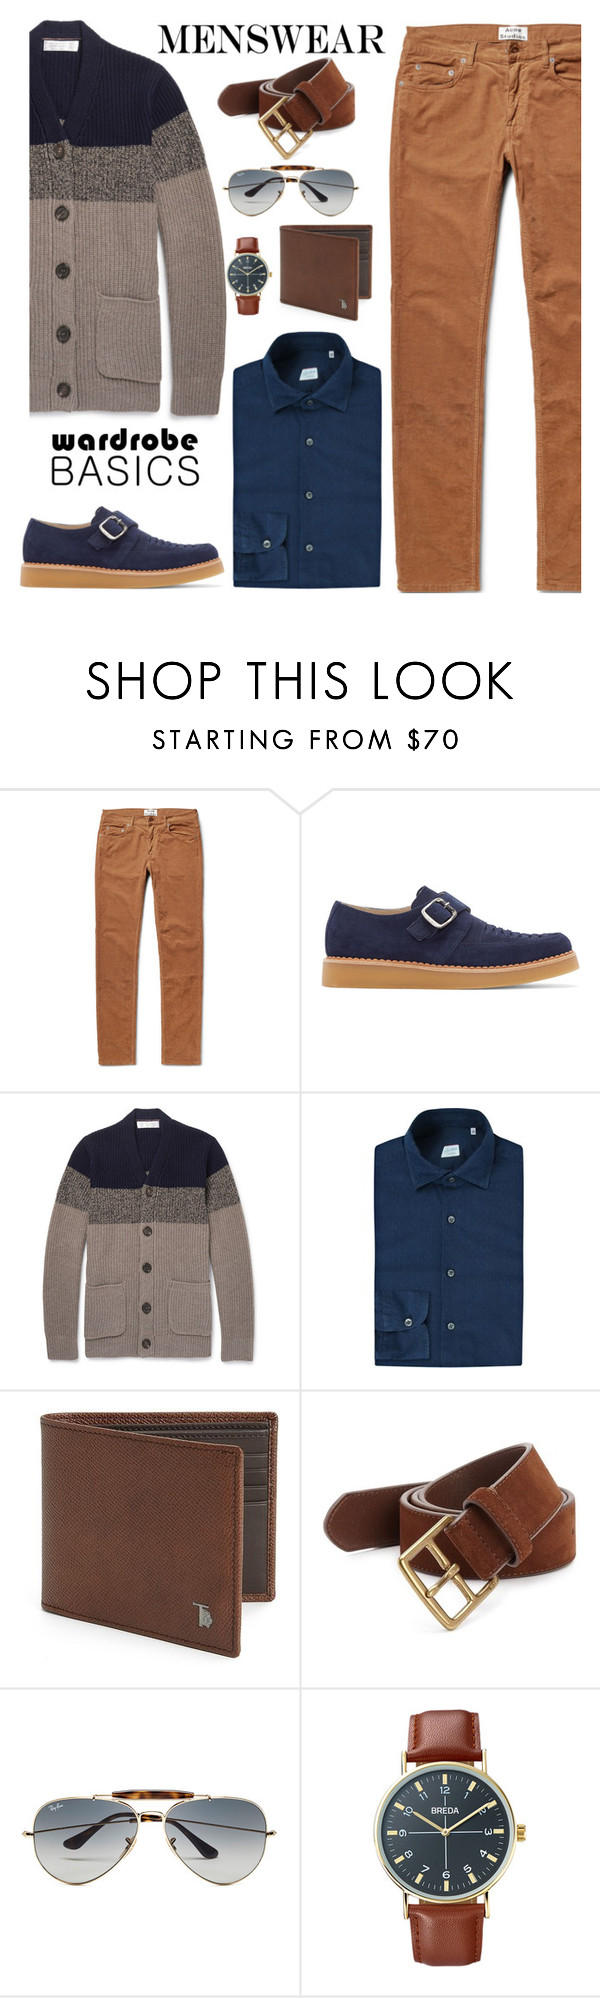 """""""Menswear"""" by ana-angela ❤ liked on Polyvore featuring Acne Studios, Diesel, Brunello Cucinelli, Slowear, Tod's, Polo Ralph Lauren, Ray-Ban, Breda, mens y men"""